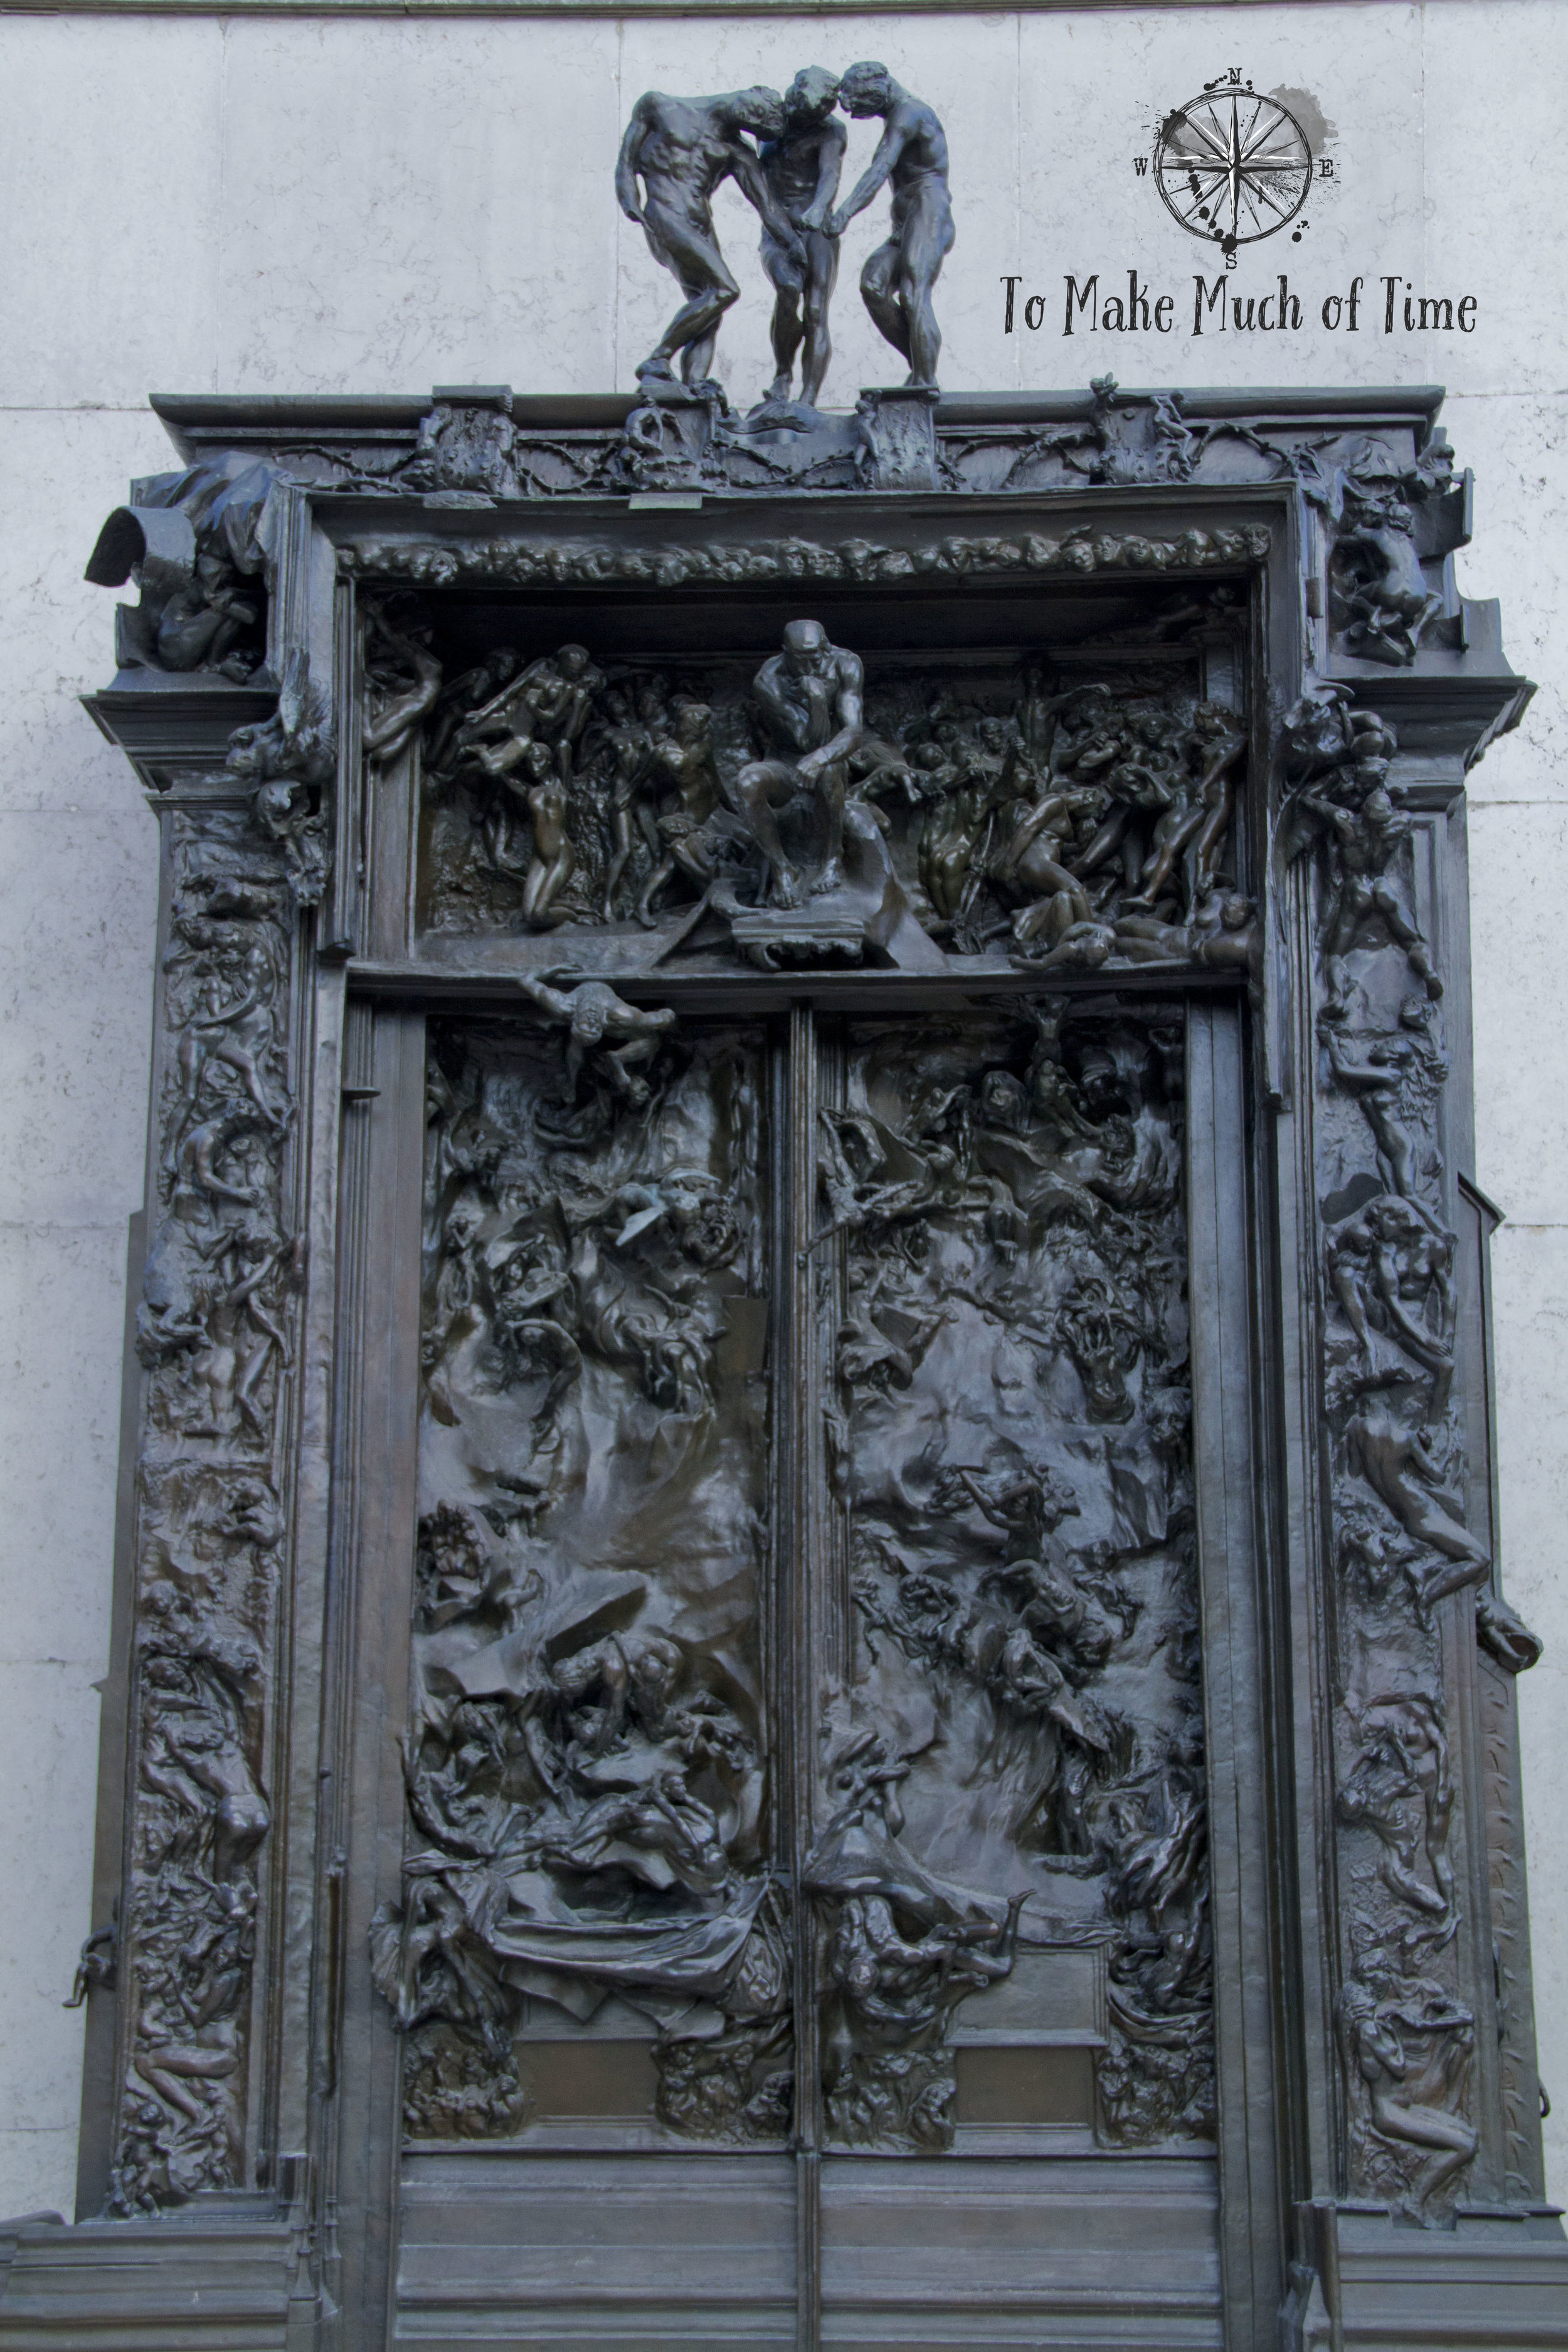 I love this massive (20 foot tall) bronze sculpture of the Gates of Hell. You can see a small version of The Thinker perched above the gates. Read more about this sculpture  here